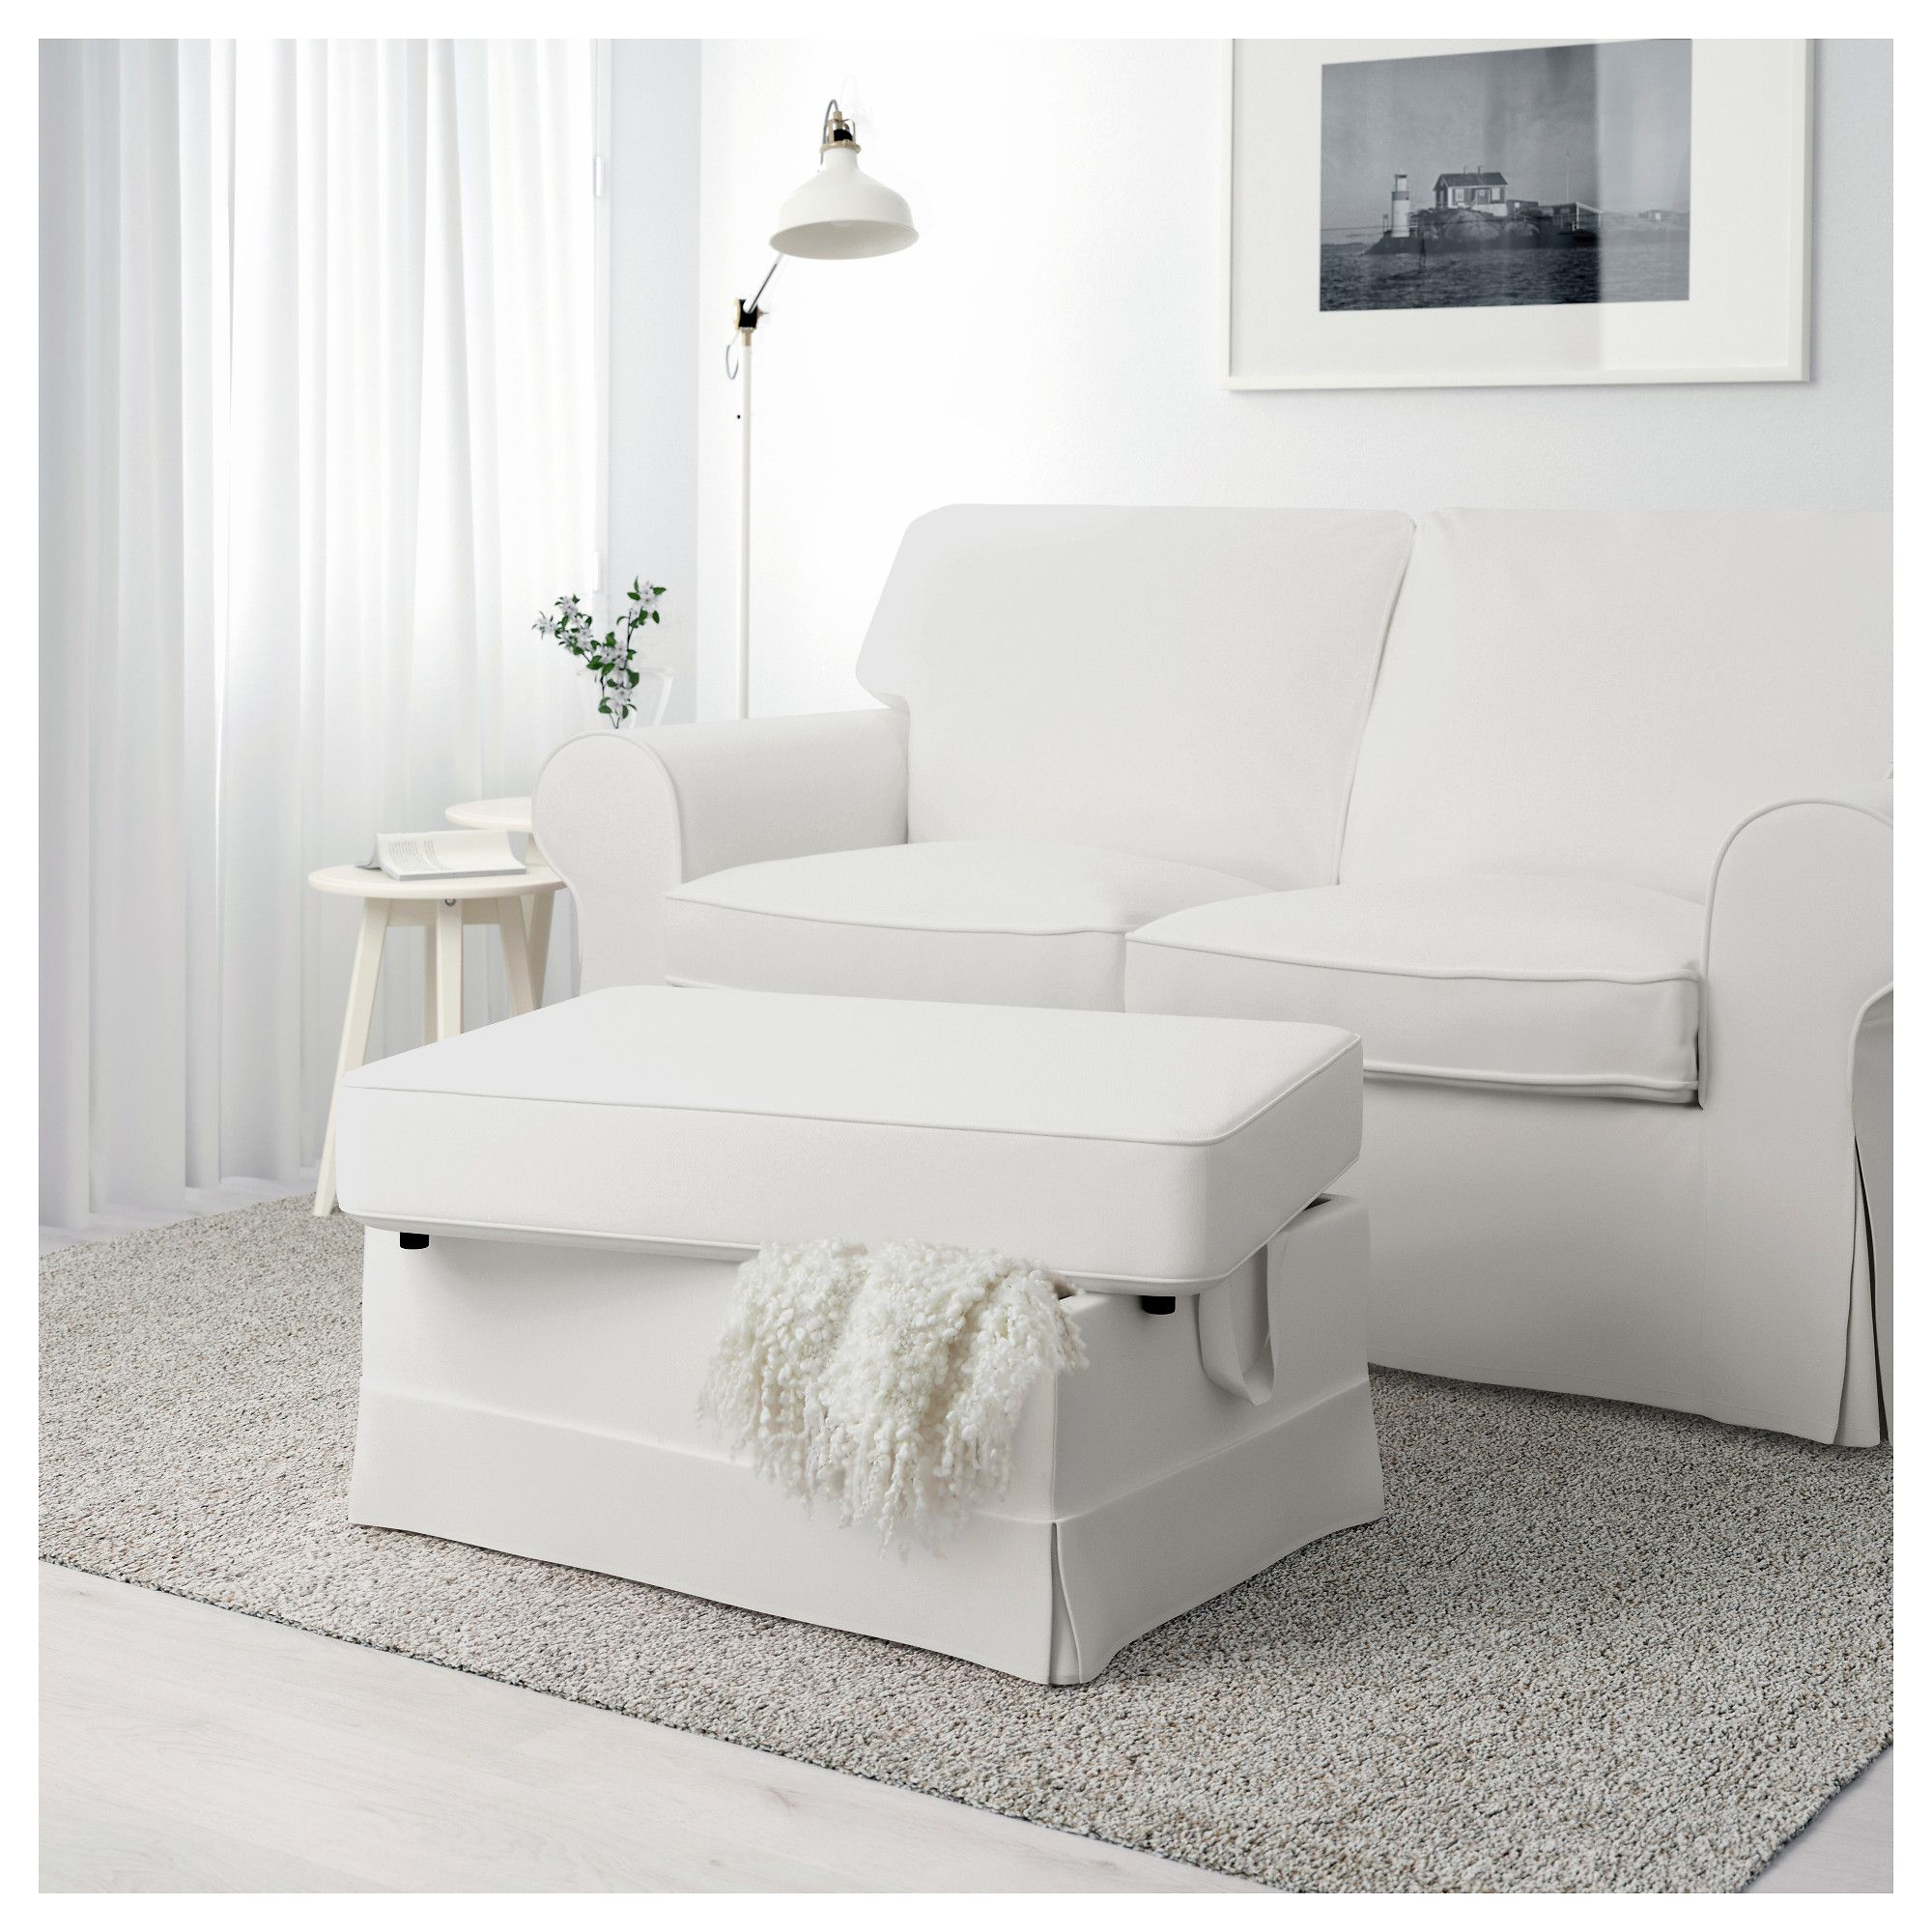 The back cushions especially have completely lost their support in the 3 years. Products   Ektorp living room, Ikea, Ikea ektorp